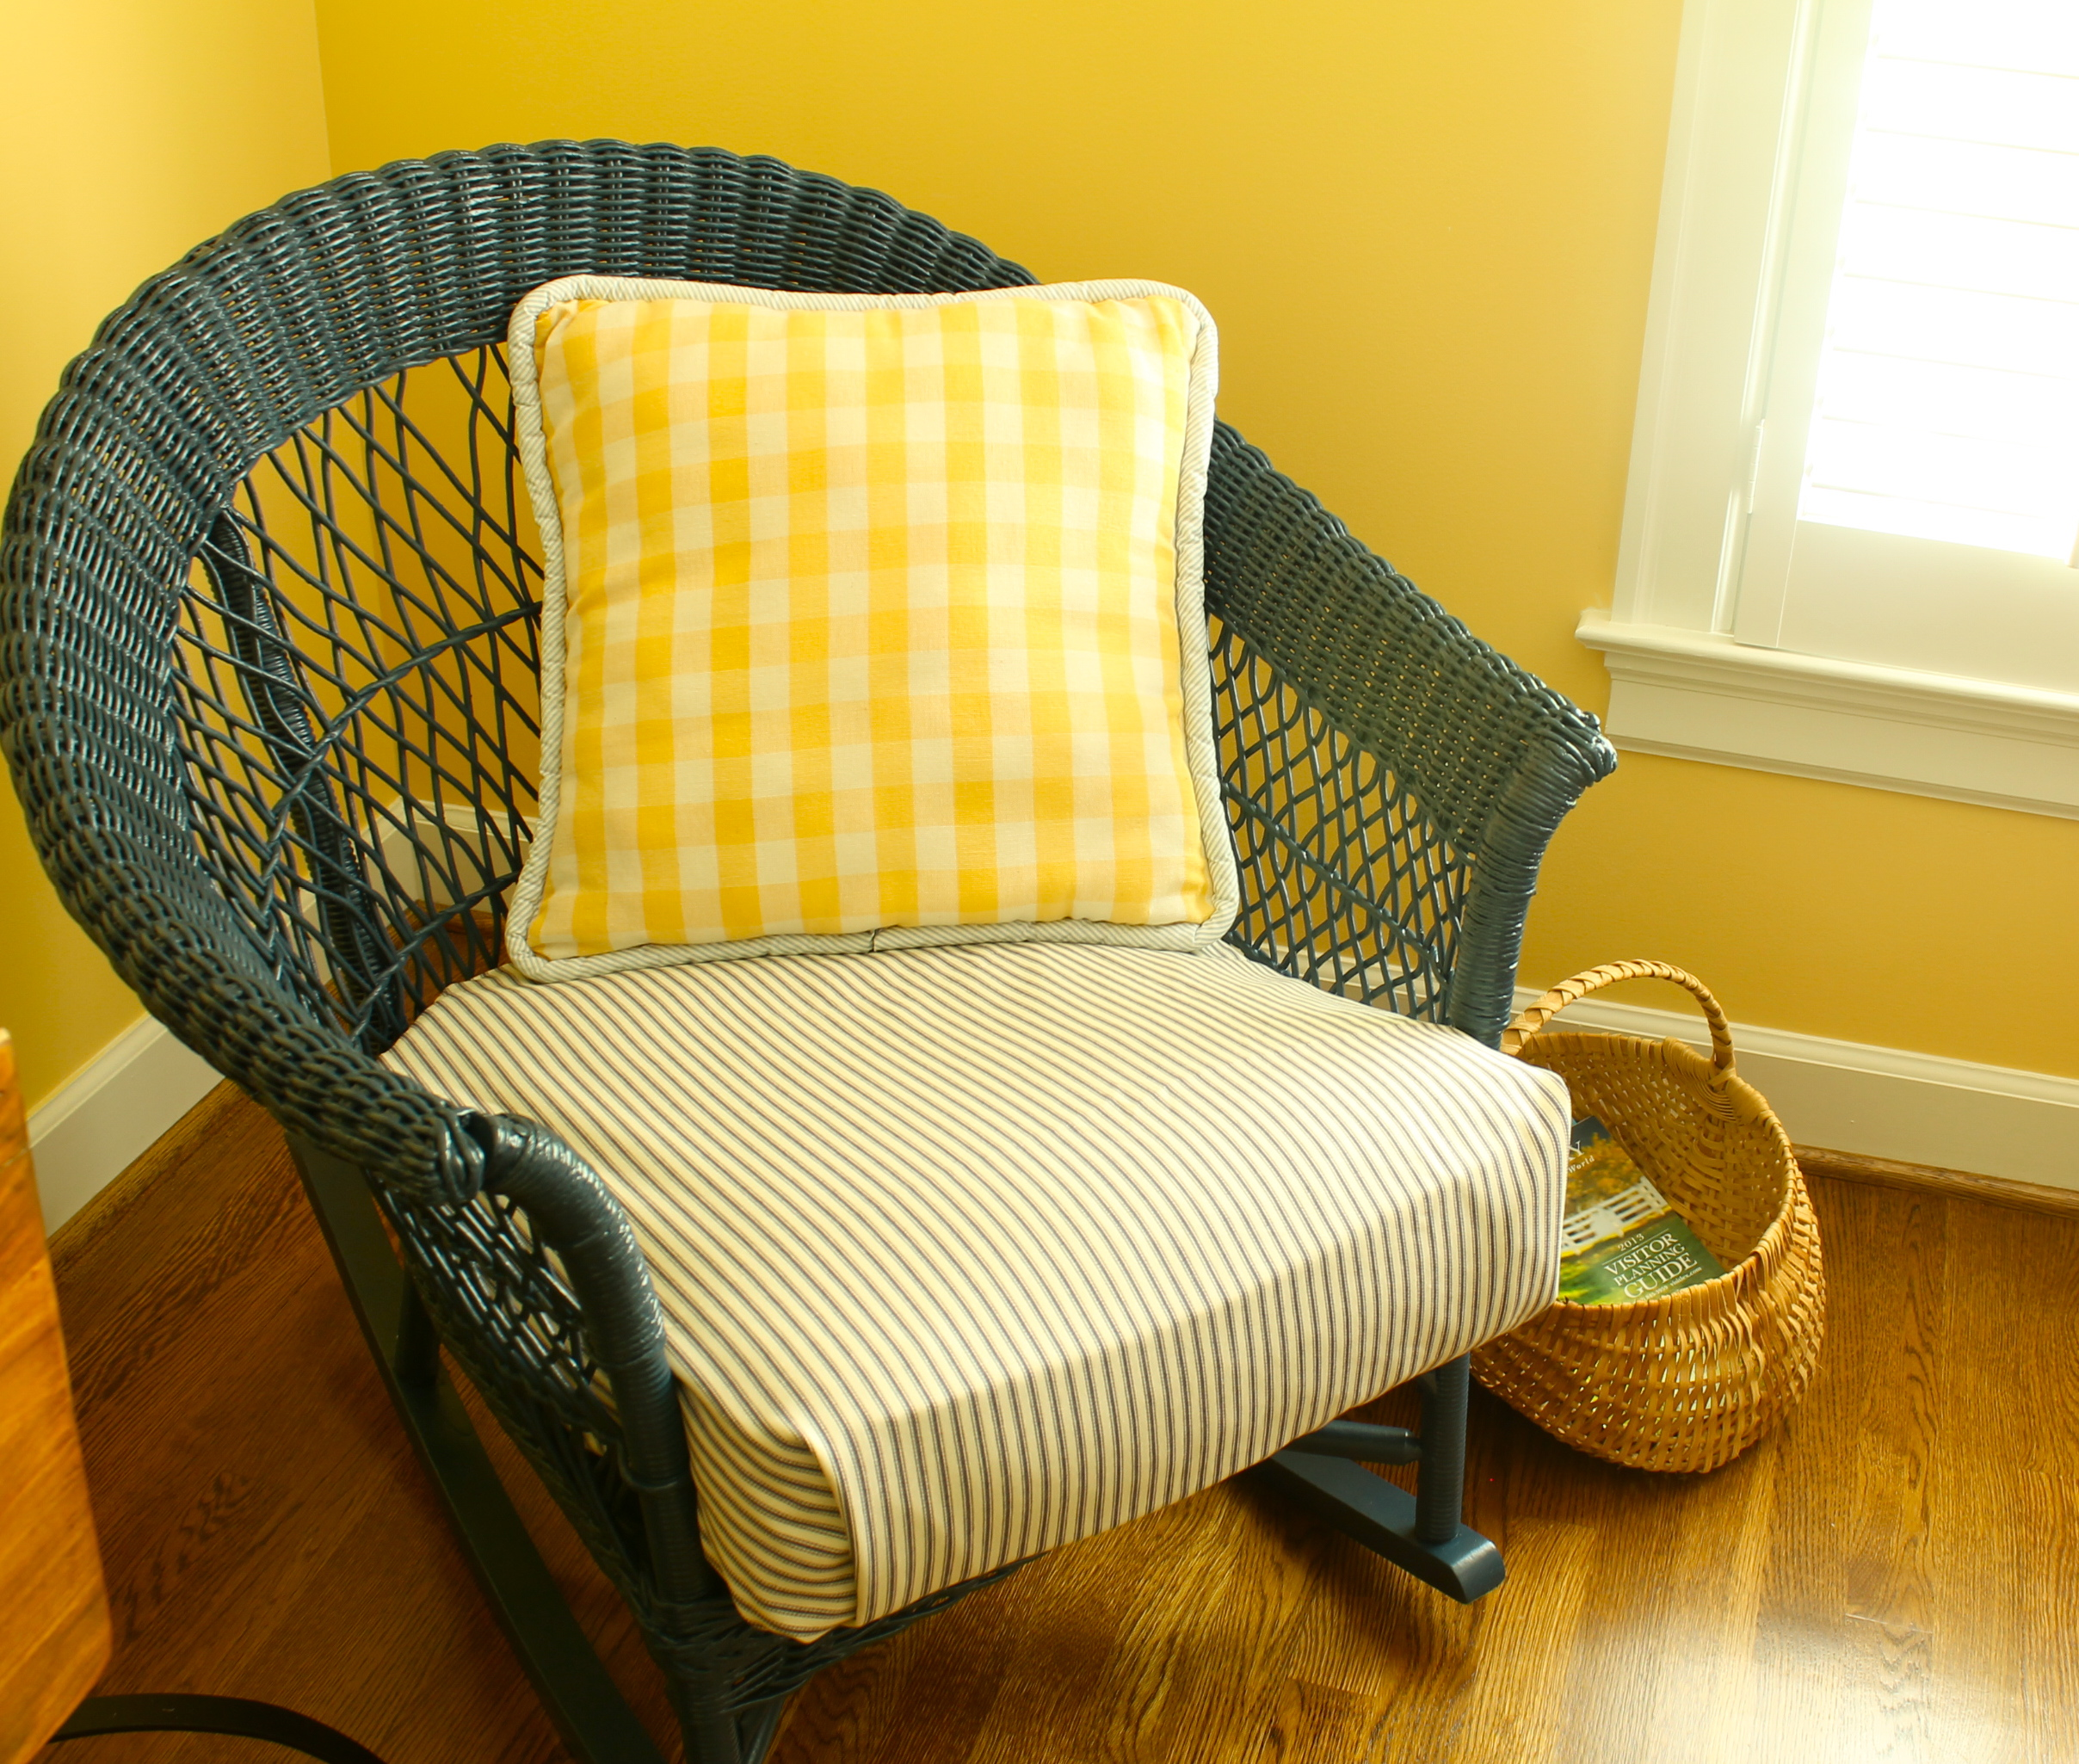 Updating Wicker Chair